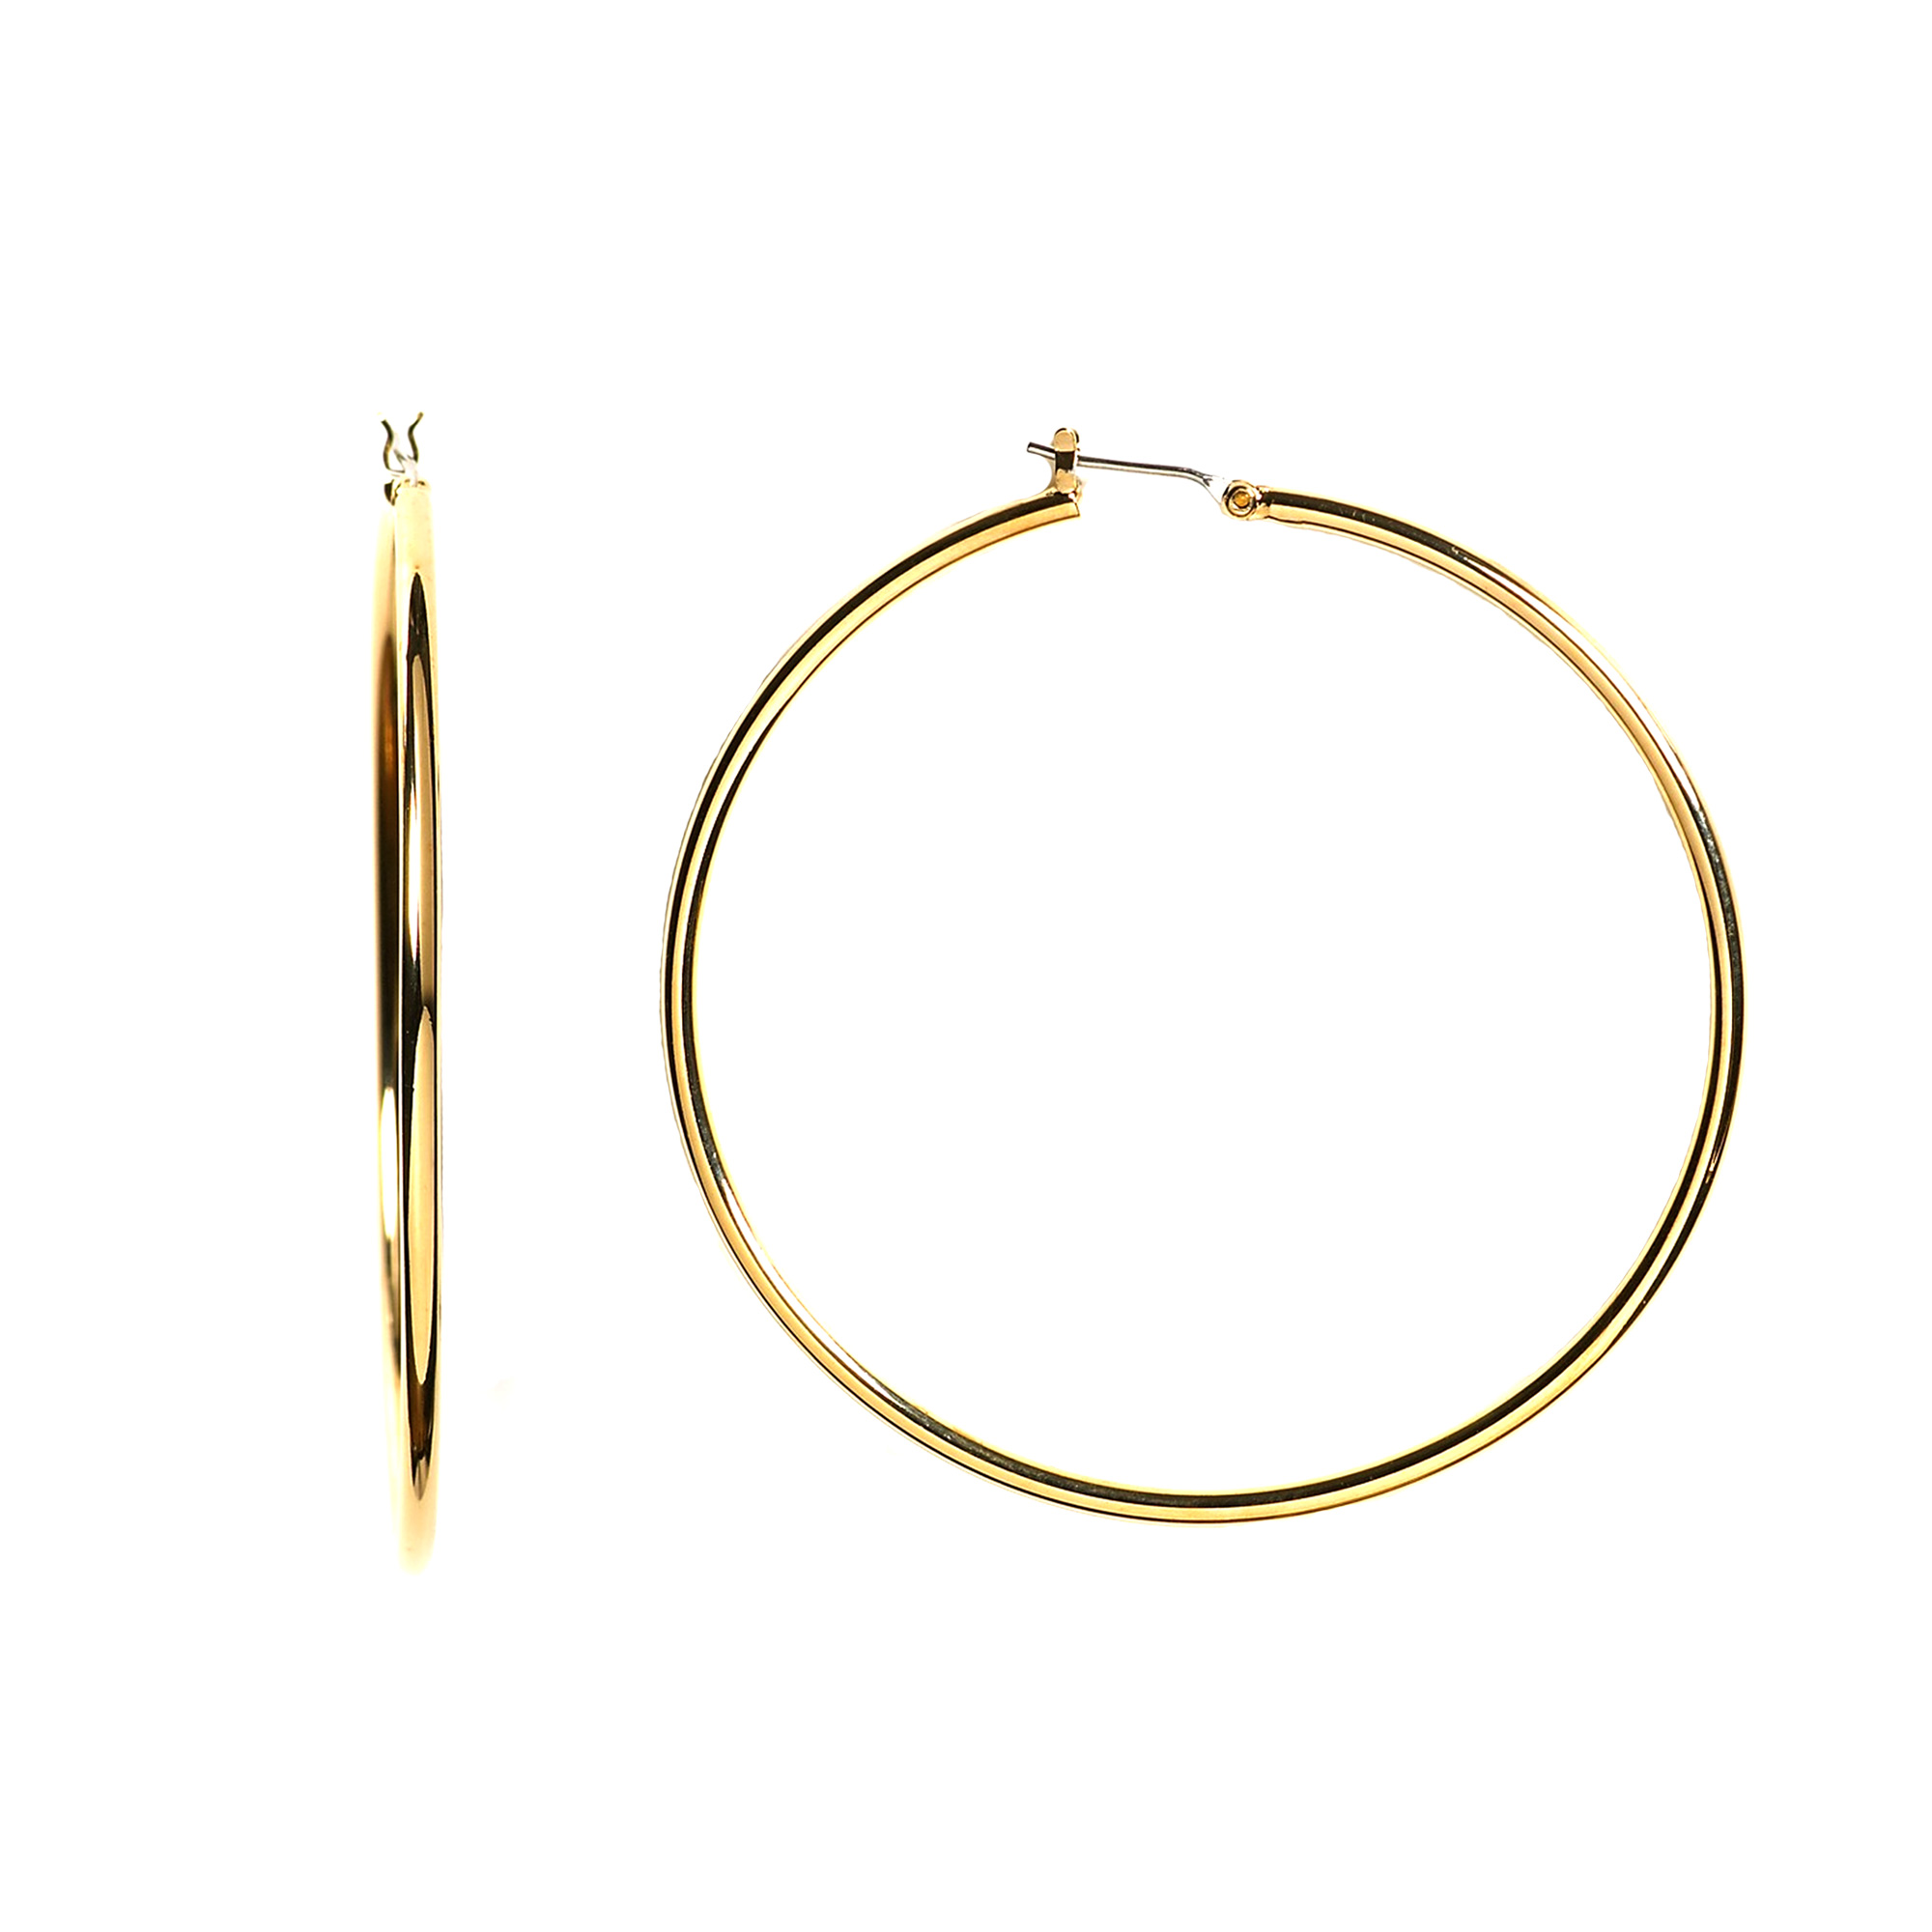 10k Yellow Gold 1.5mm Shiny Round Tube Hoop Earrings, Diameter 30mm Complete your jewelry collection with a gorgeous pair of 10k gold hoop earrings. Whether you prefer large bohemian look or tiny orbs, you'll discover plenty of sizes to match your style. These earrings have a secure snap post clasp making them easy to wear and remove.